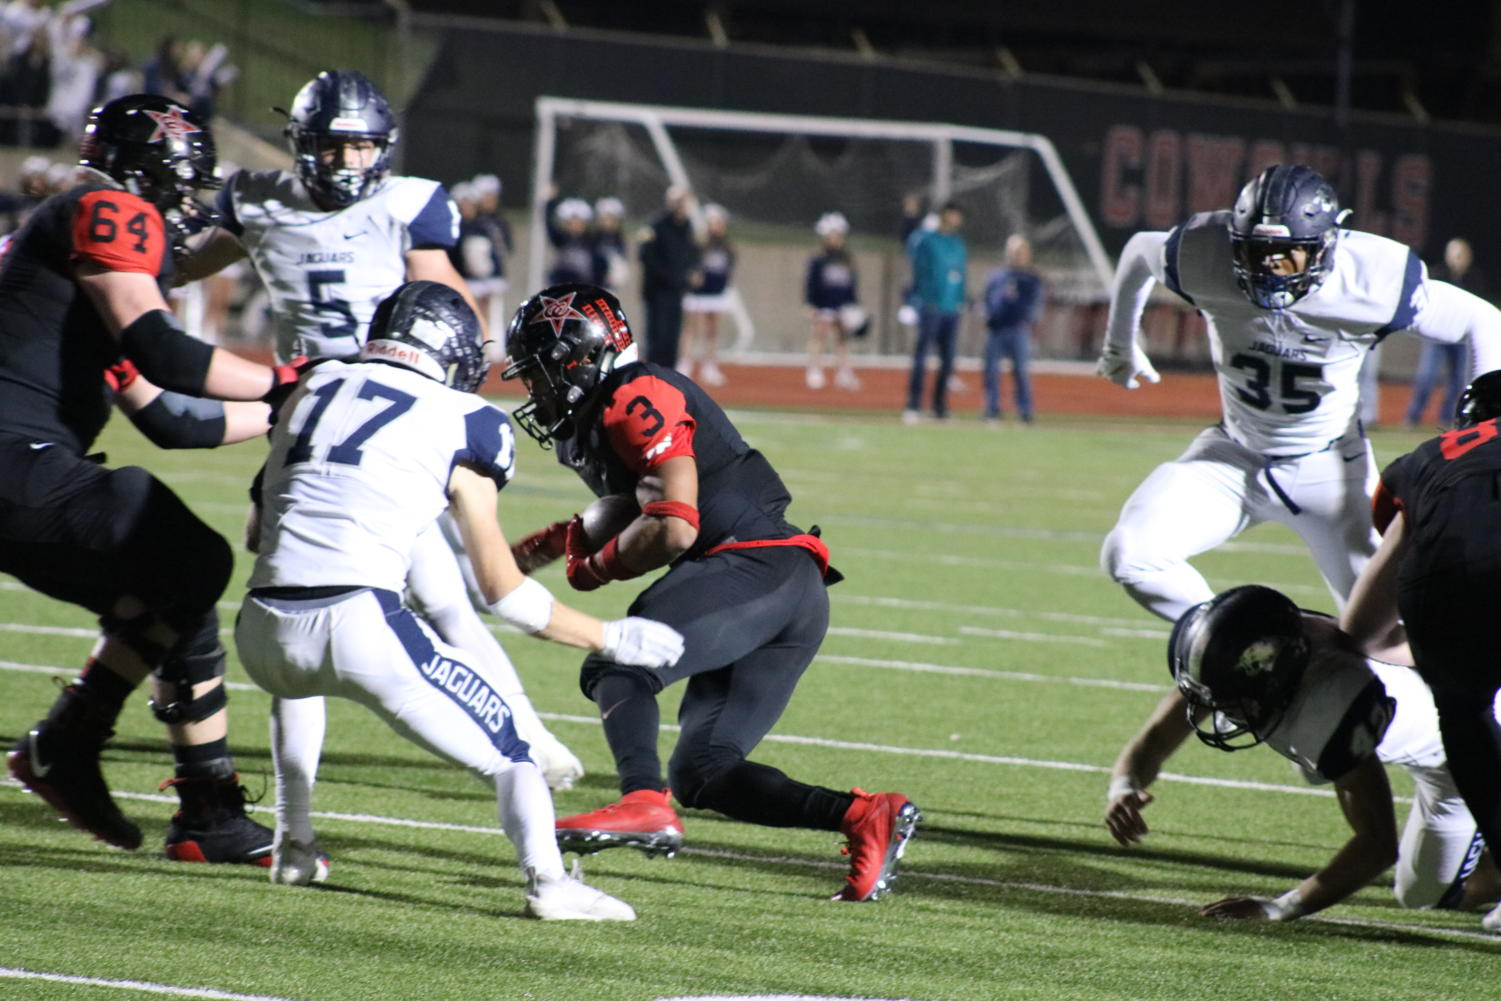 Coppell senior wide receiver Jonathan McGill attempts to run around the Flower Mound defense last Friday night. The Cowboys lost to the Jaguars, 31-17, at Buddy Echols Field.